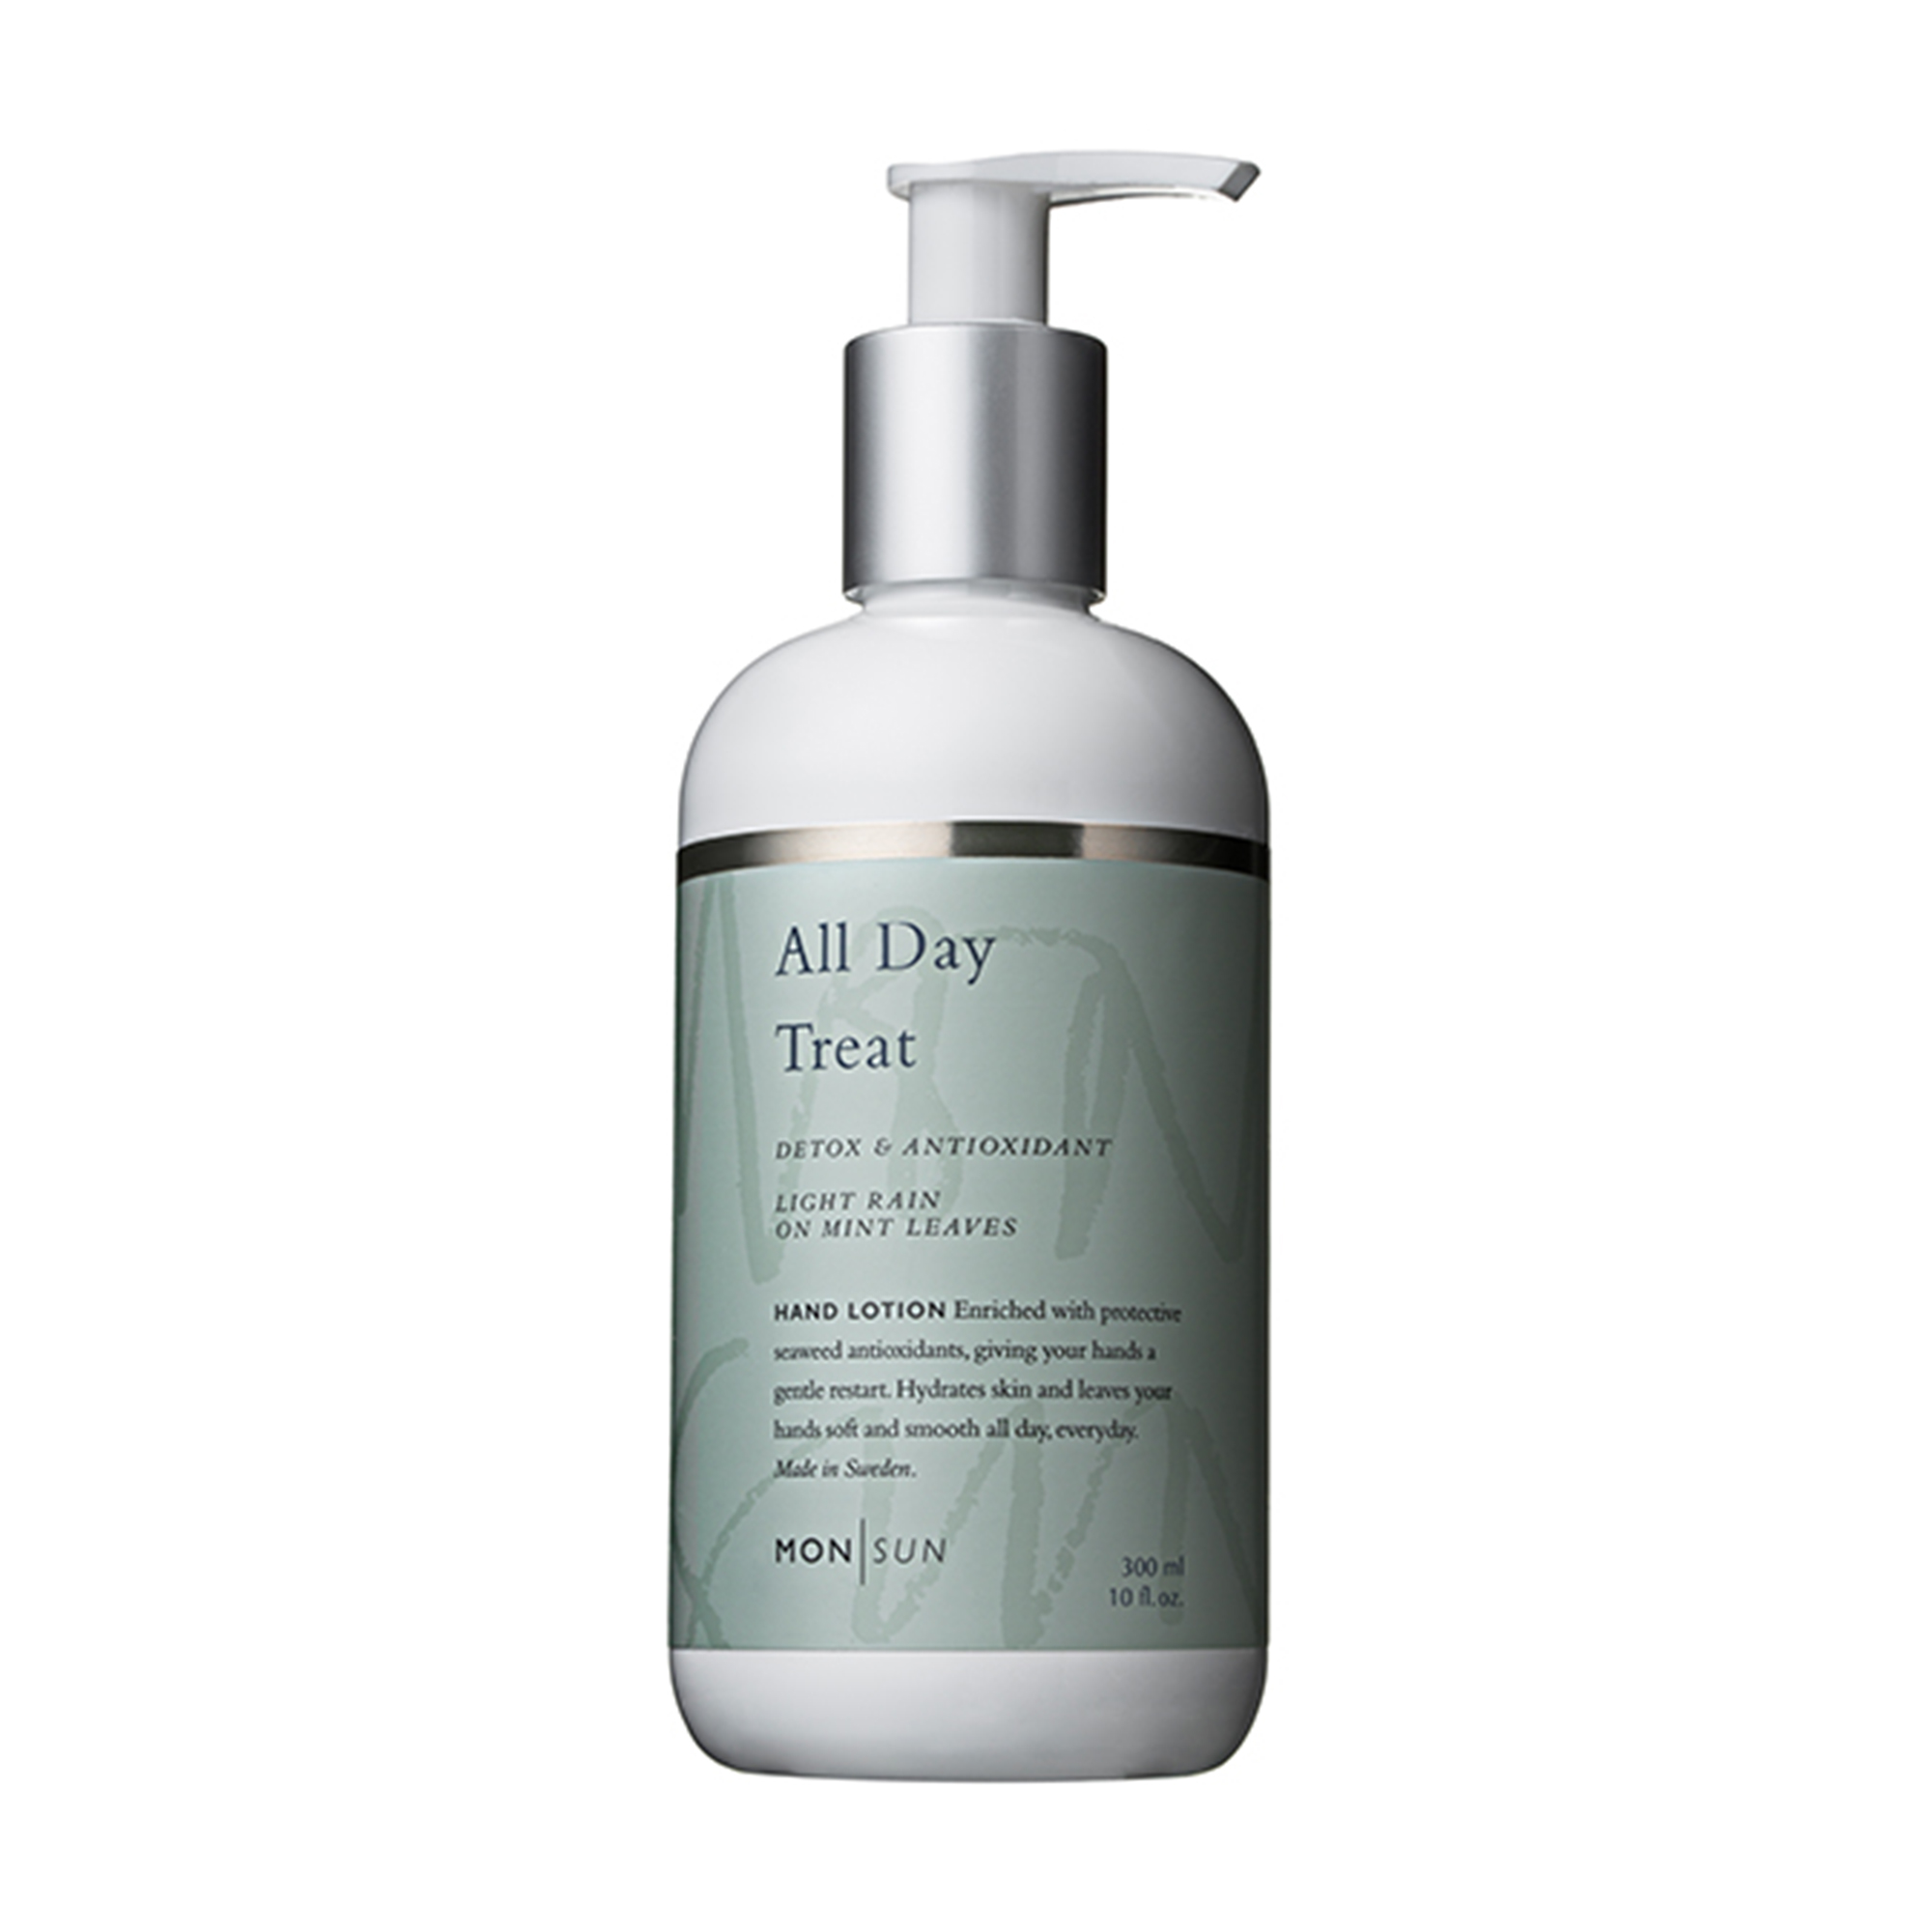 All Day Treat Detox & Antioxidant Hand Lotion